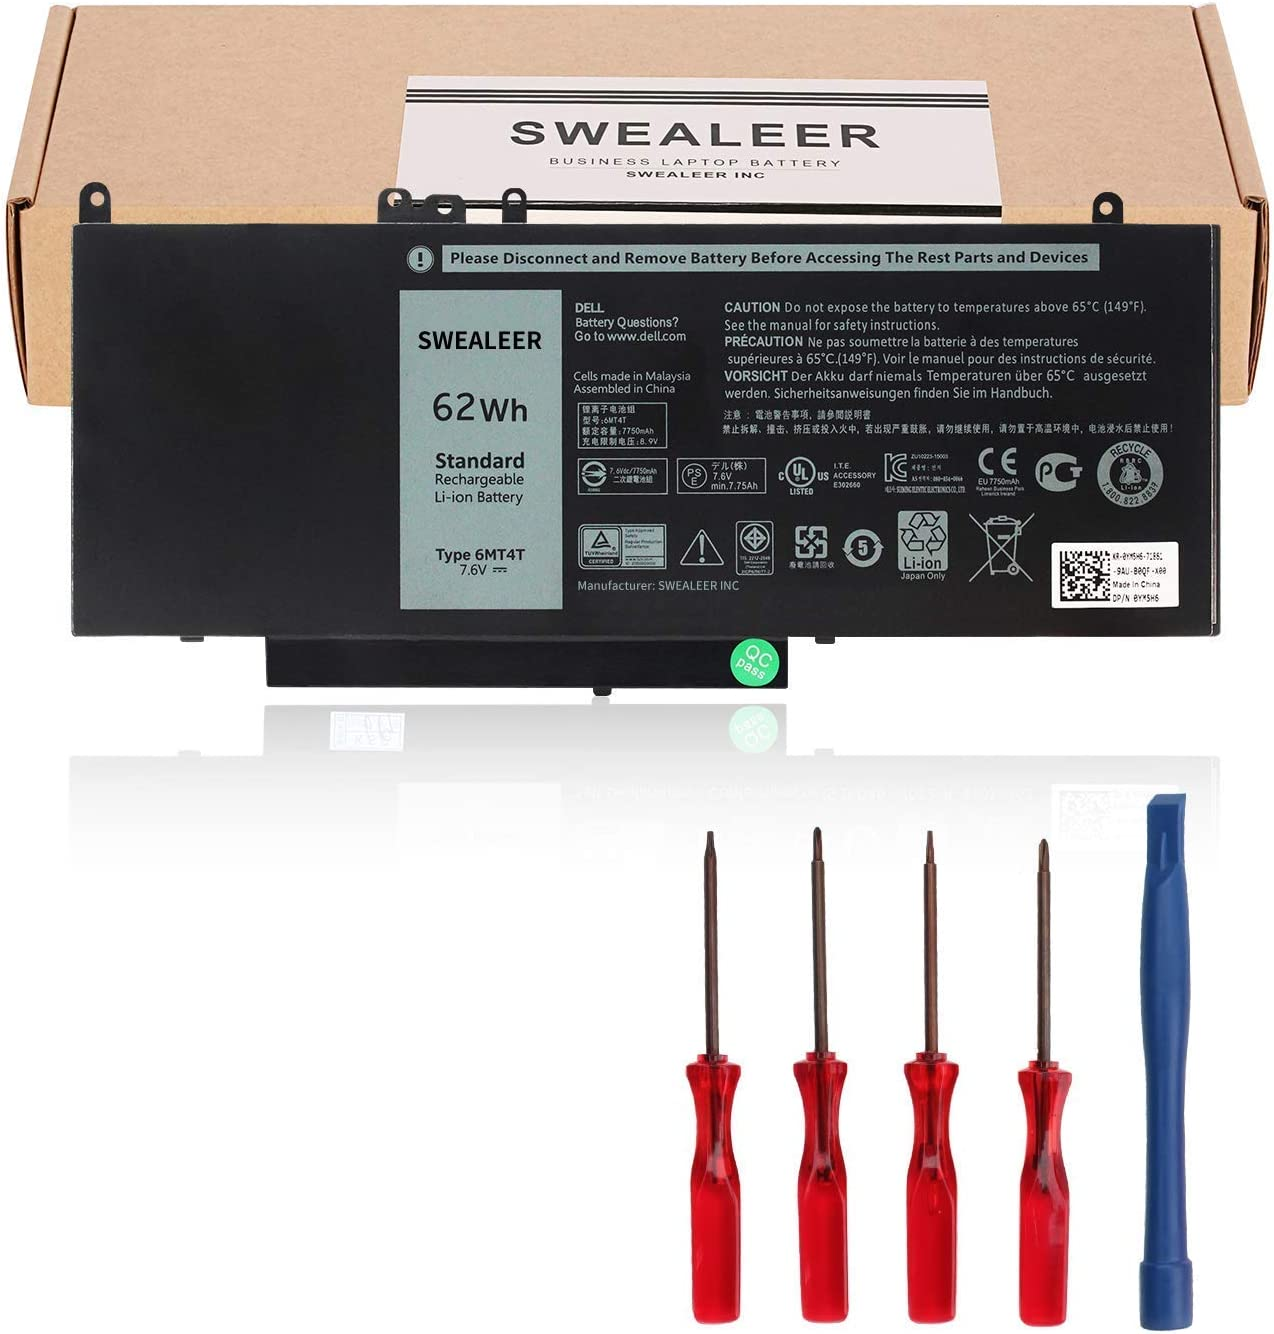 SWEALEER 6MT4T Laptop Battery Compatible with Dell Latitude 14 5470 E5470 15 5570 E5570 Precision 15 3510 M3510 Series Notebook Replacement for 7V69Y TXF9M 79VRK 07V69Y 0HK6DV 079VRK 0TXF9M [6MT4T]